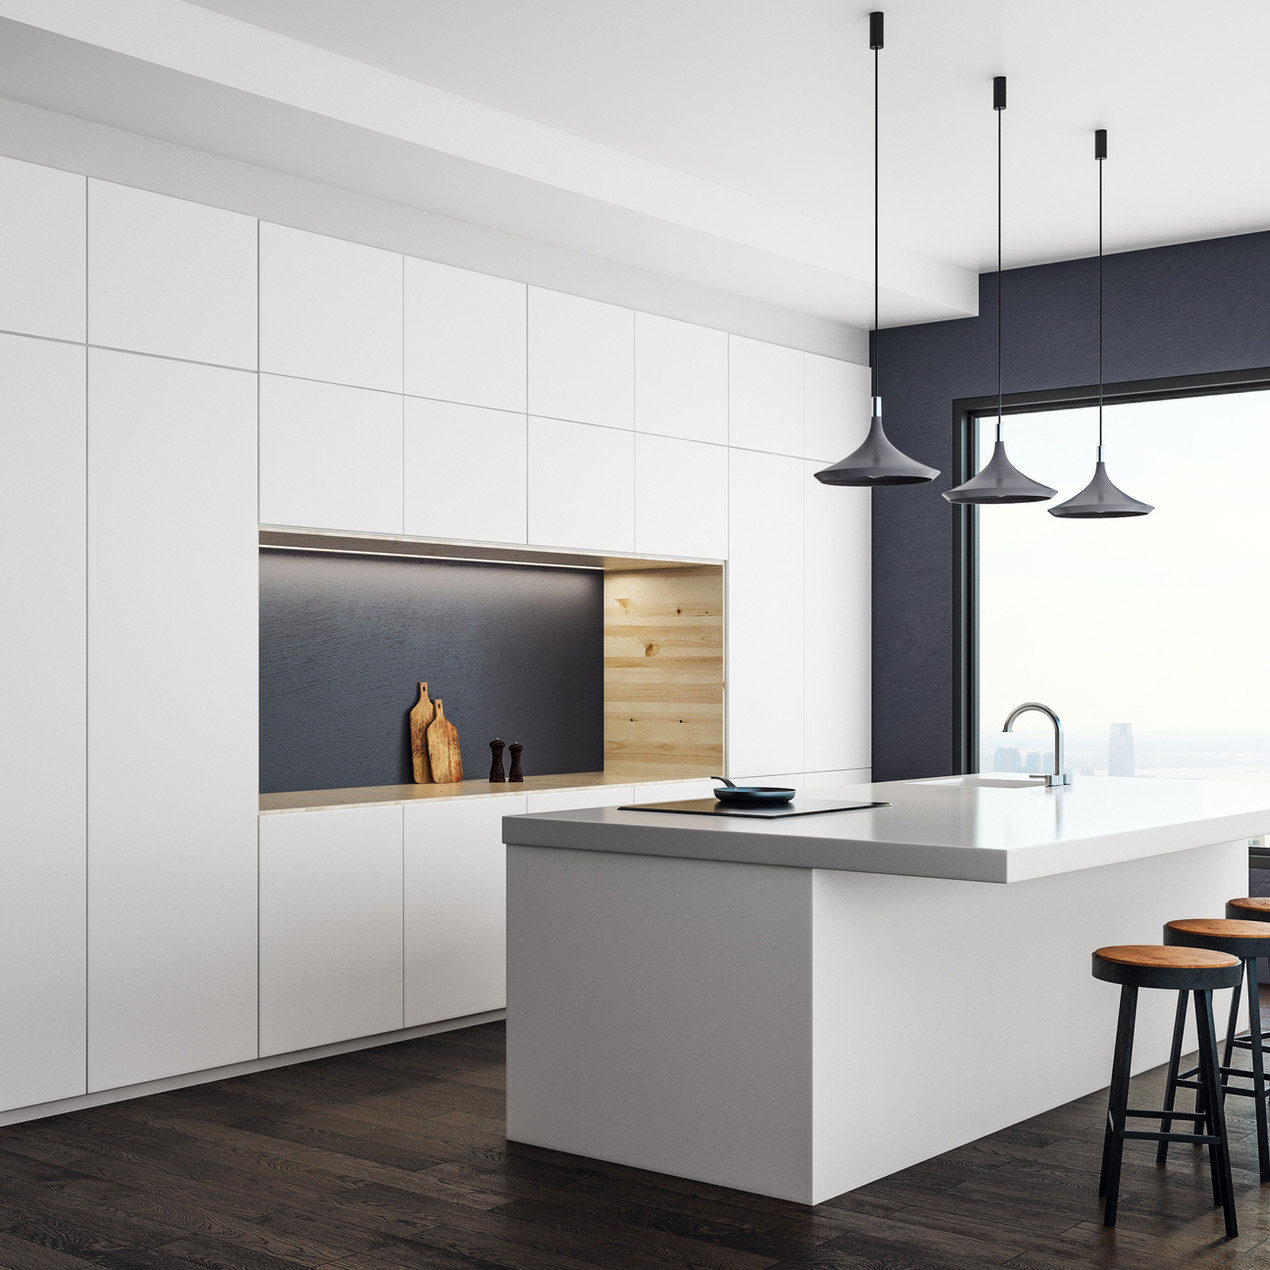 A sleek & modern kitchen designed with a minimalist aesthetic.